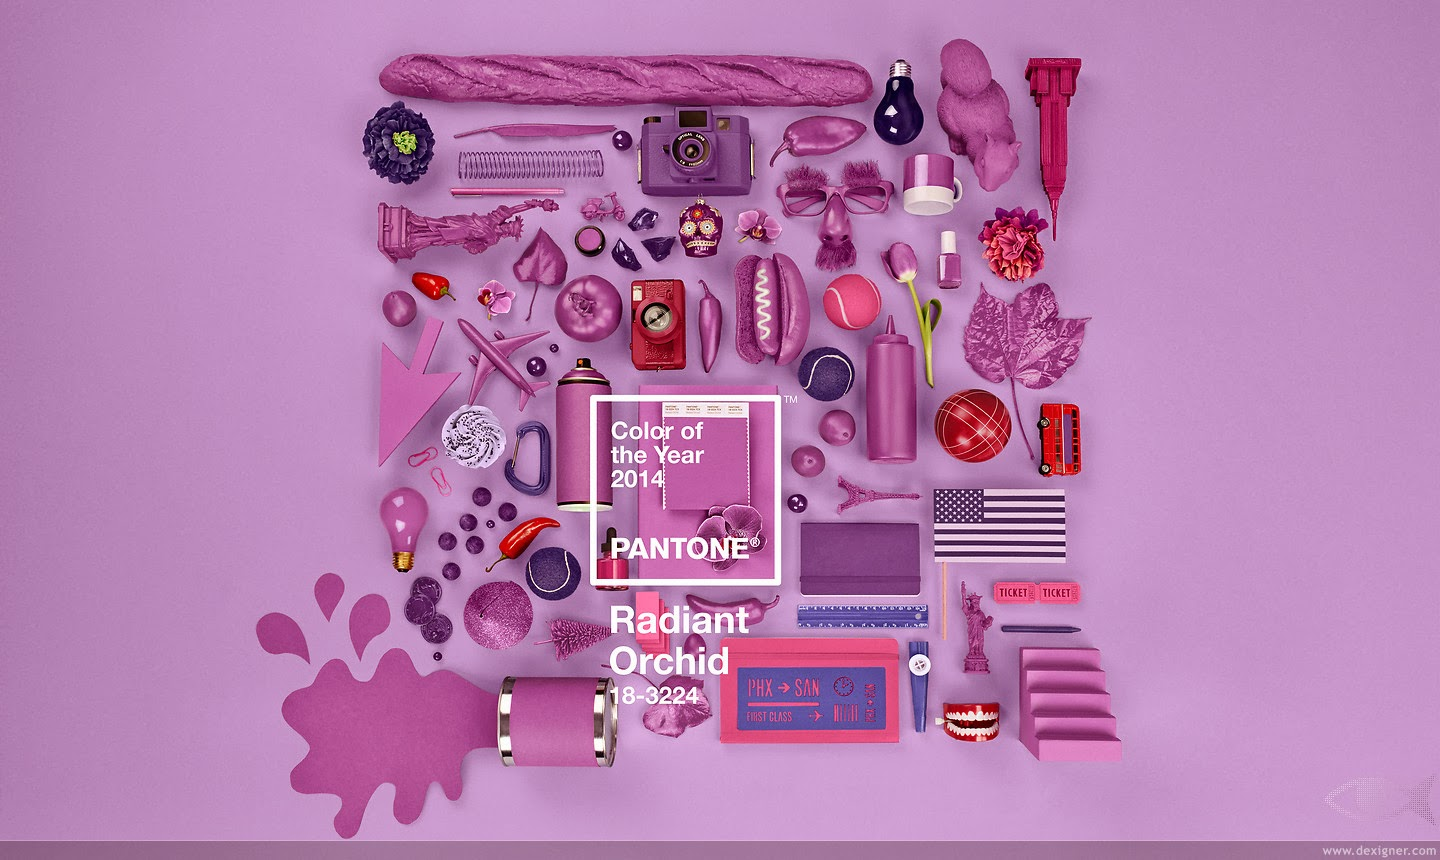 Radiant_Orchid_PANTONE_2014_Color_of_the_Year_01_gallery.jpg